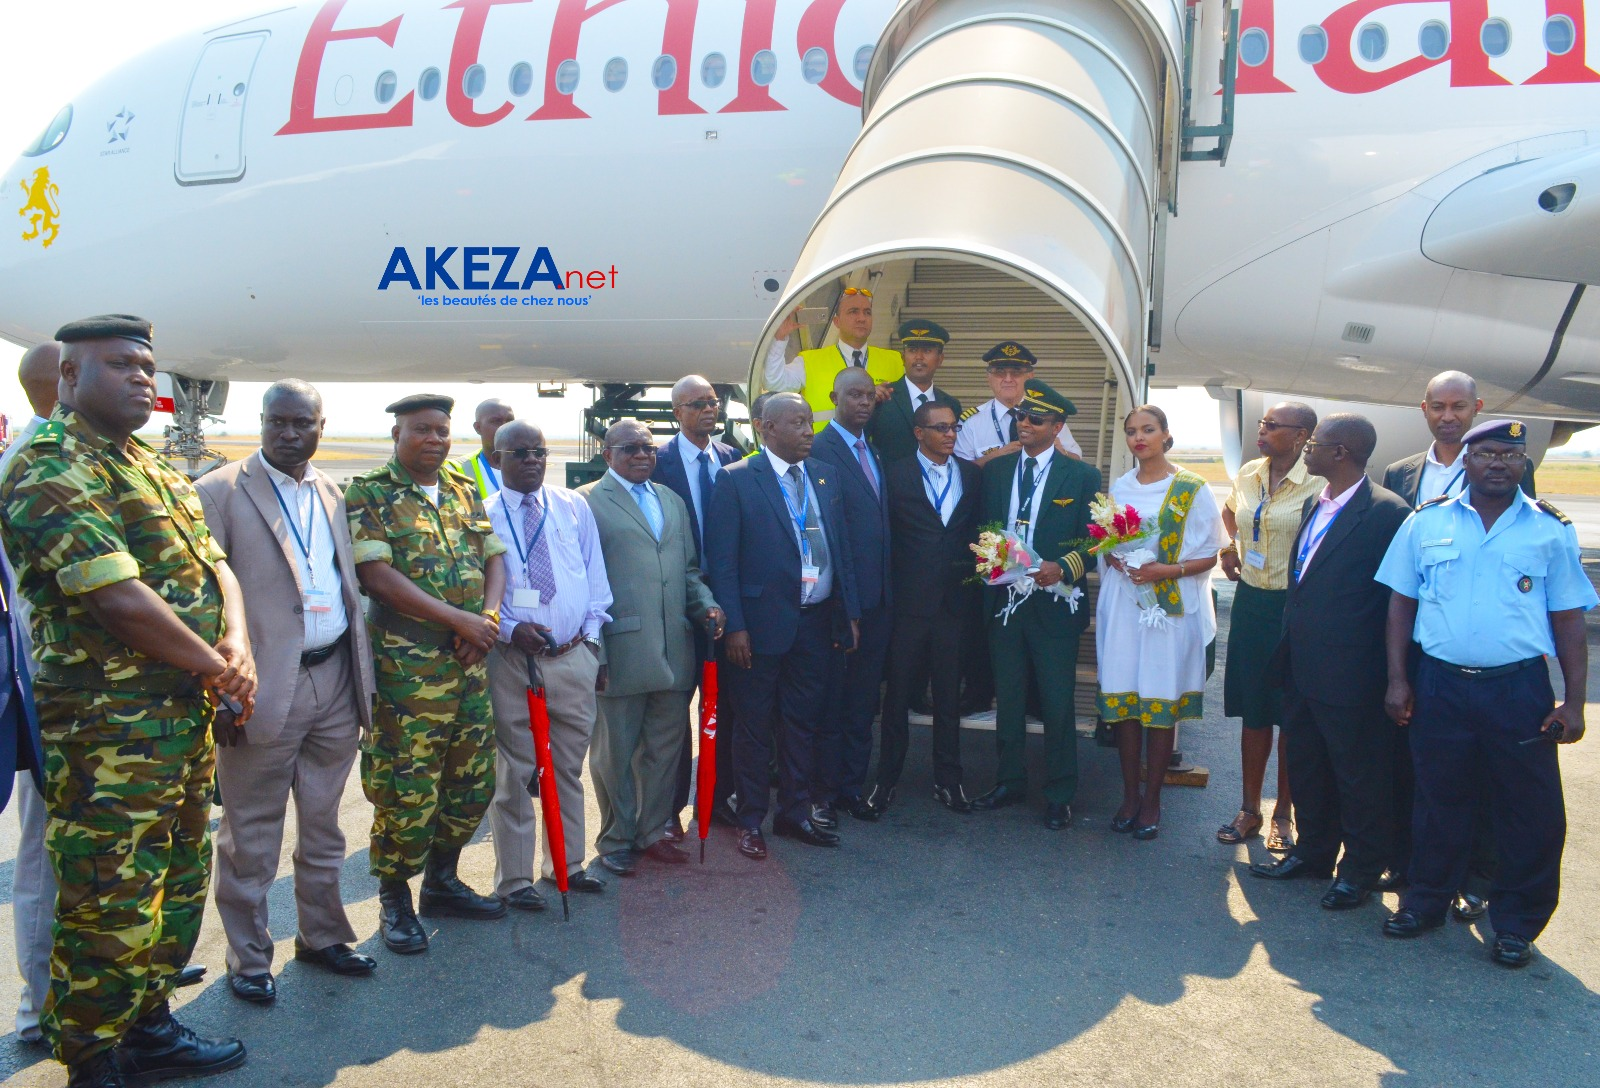 Ethiopian's Airbus A350 XWB, the first of its type ever in the African airspace welcomed with great fanfare in Bujumbura